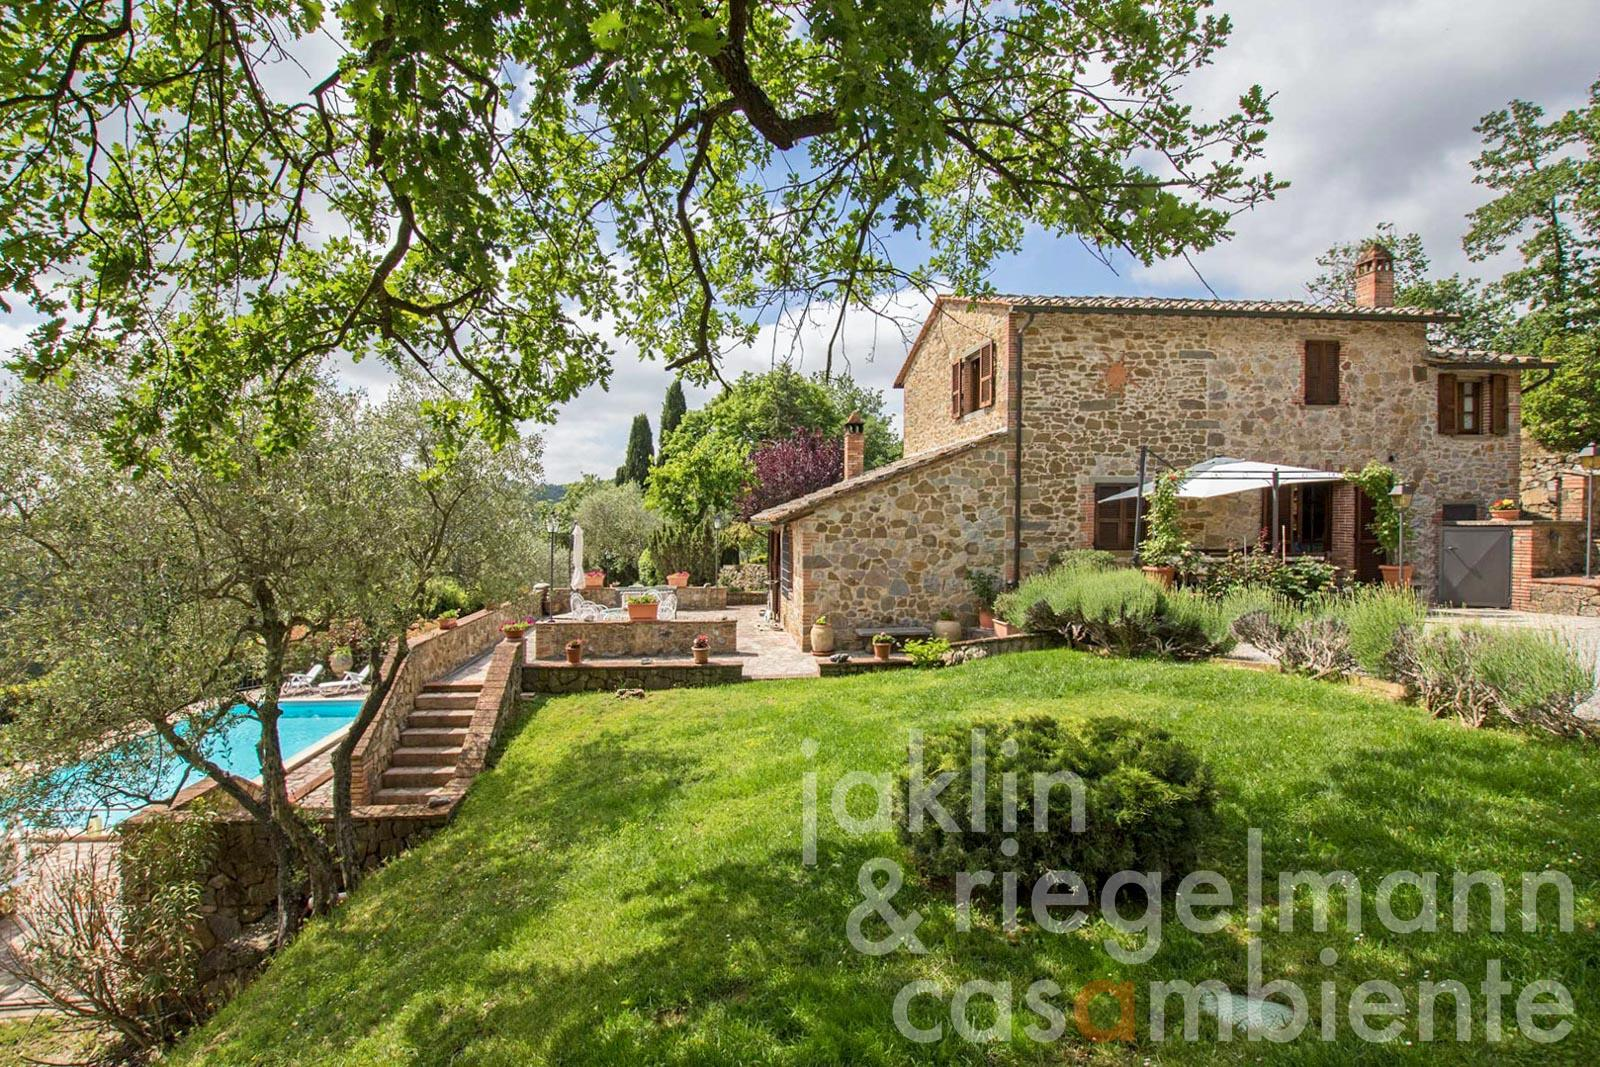 Restored country house with swimming pool and olive grove near Sinalunga in Tuscany